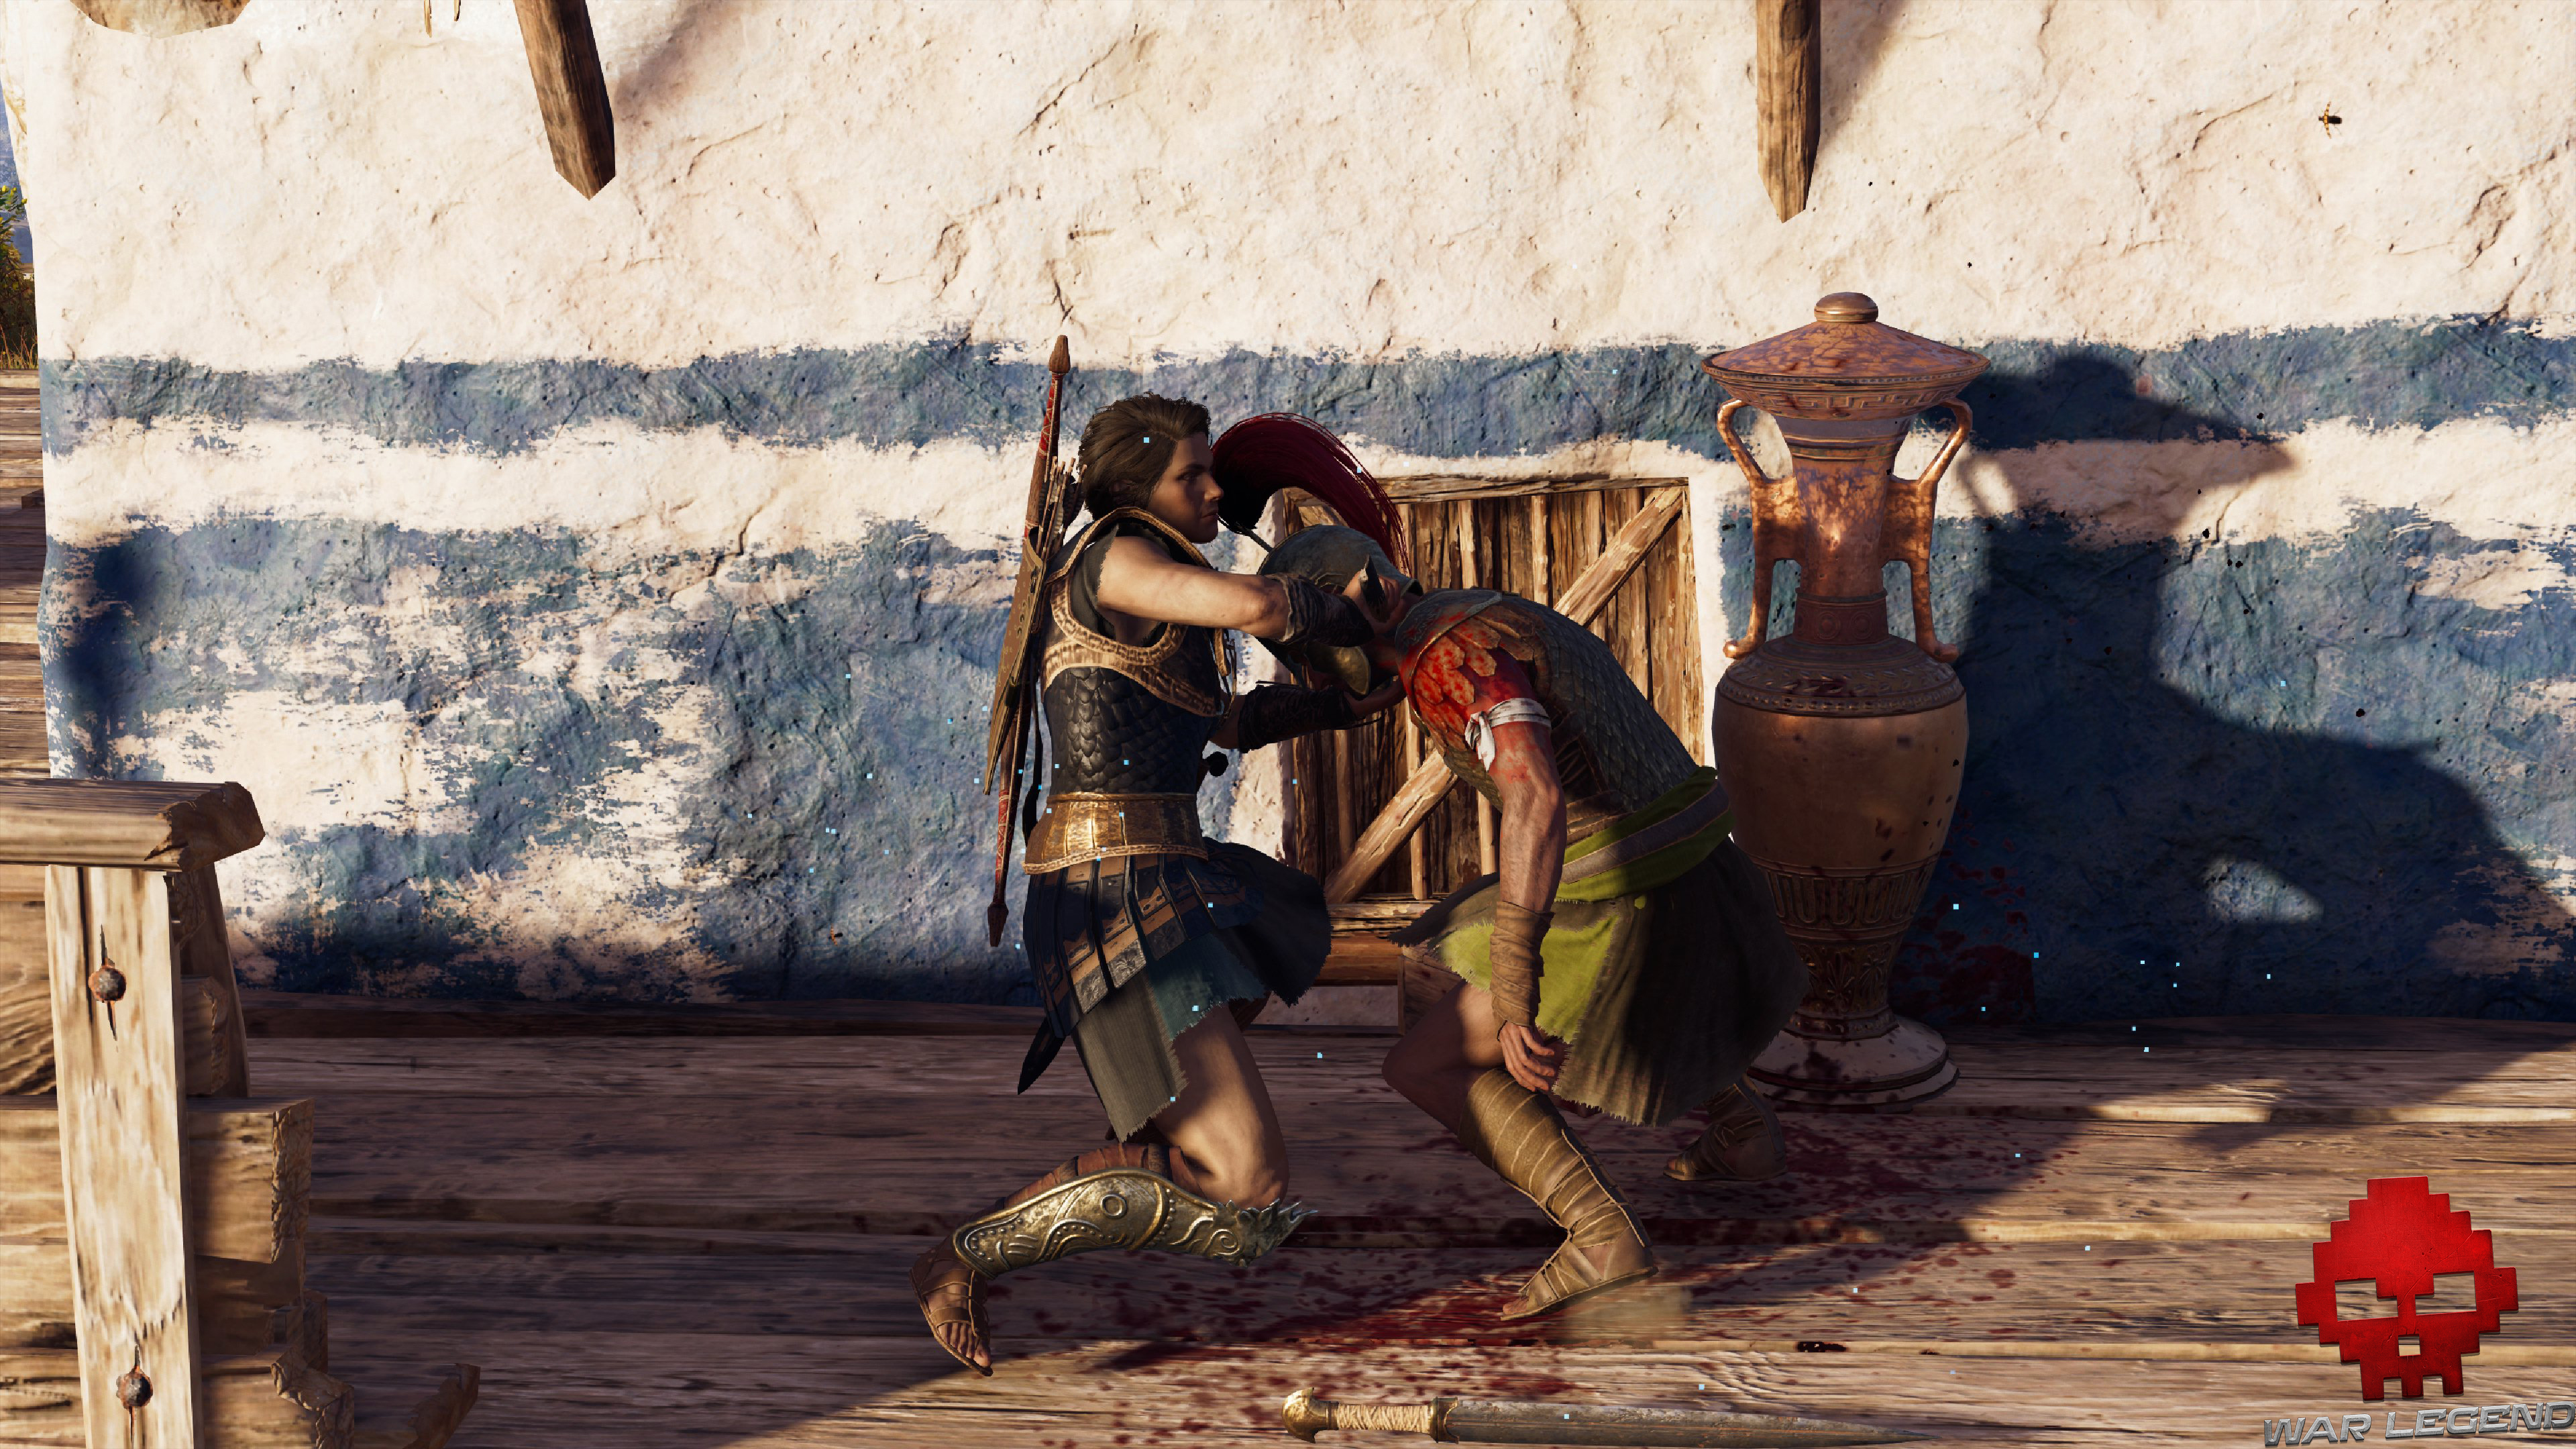 Guide compétences Assassin's Creed Odyssey - Assassinat